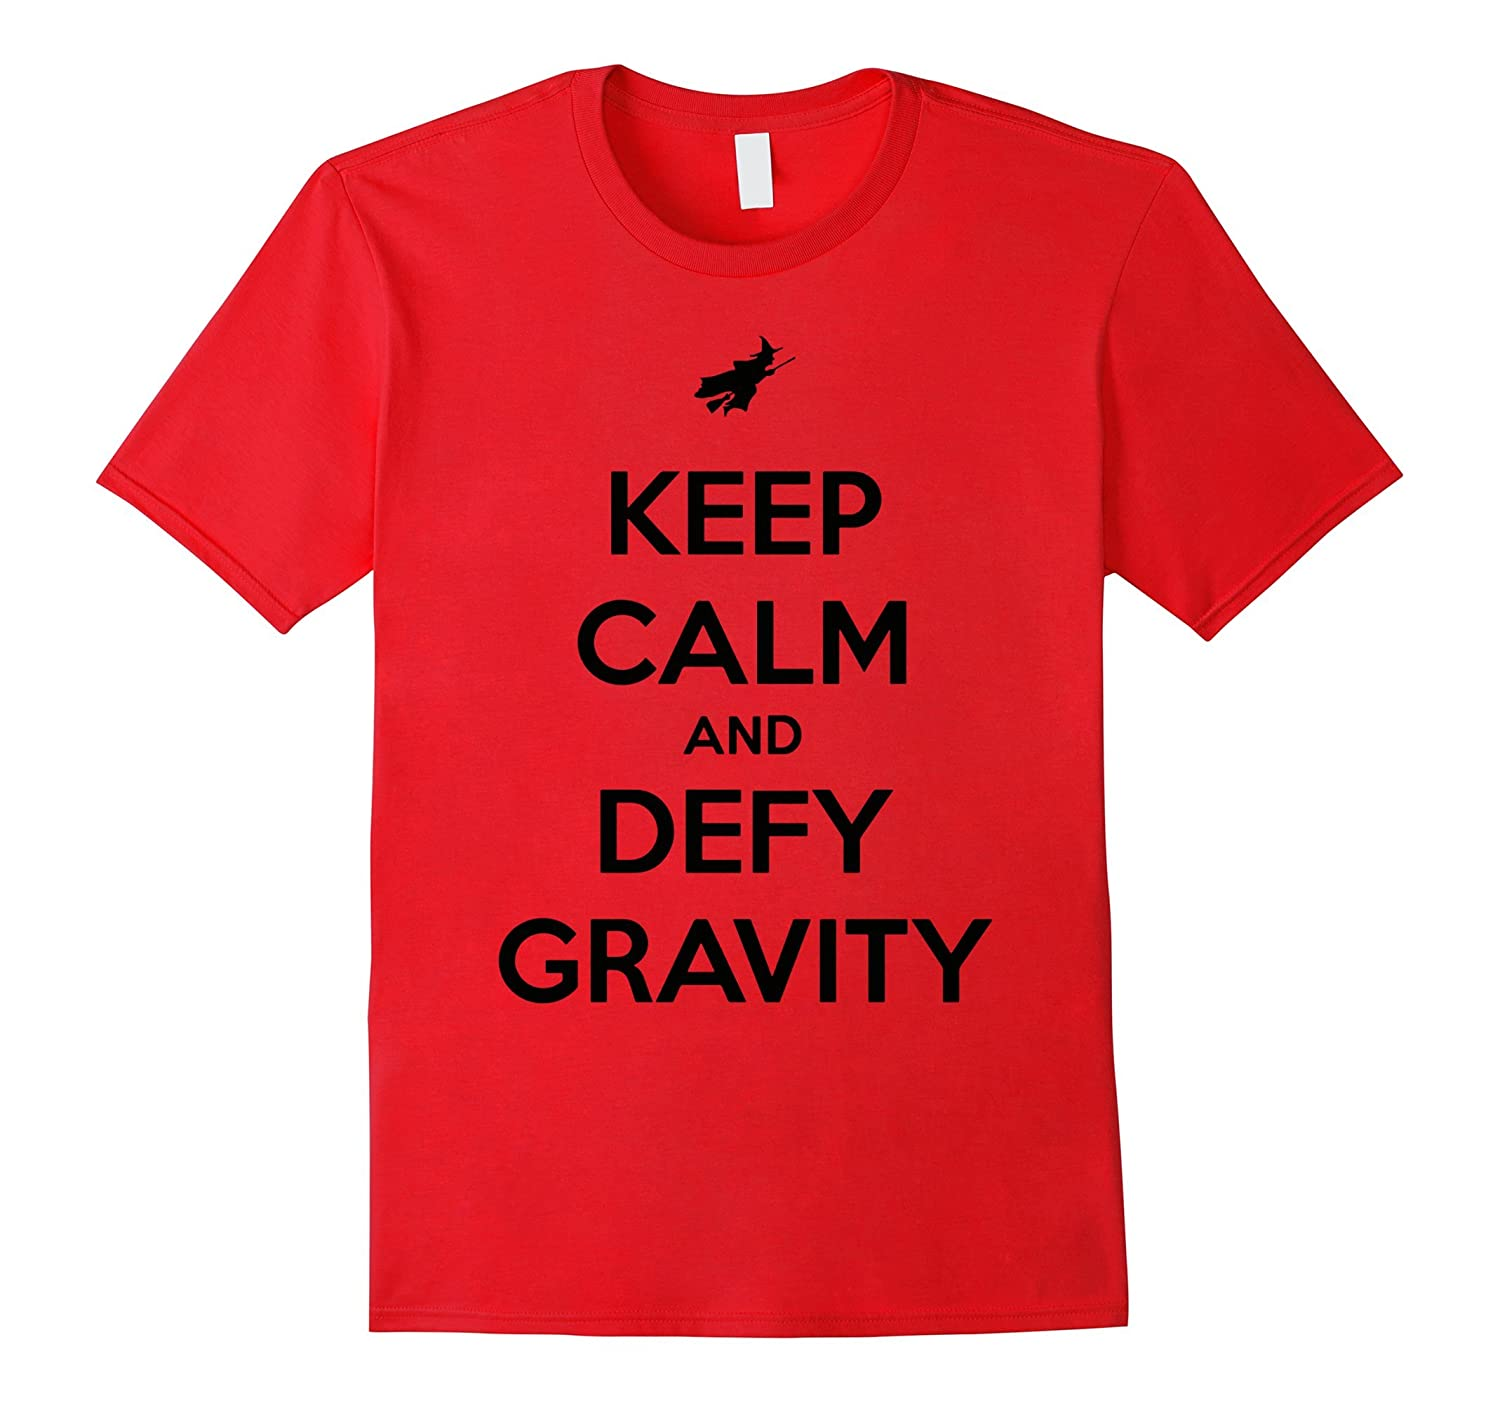 KEEP CALM AND DEFY GRAVITY-BN